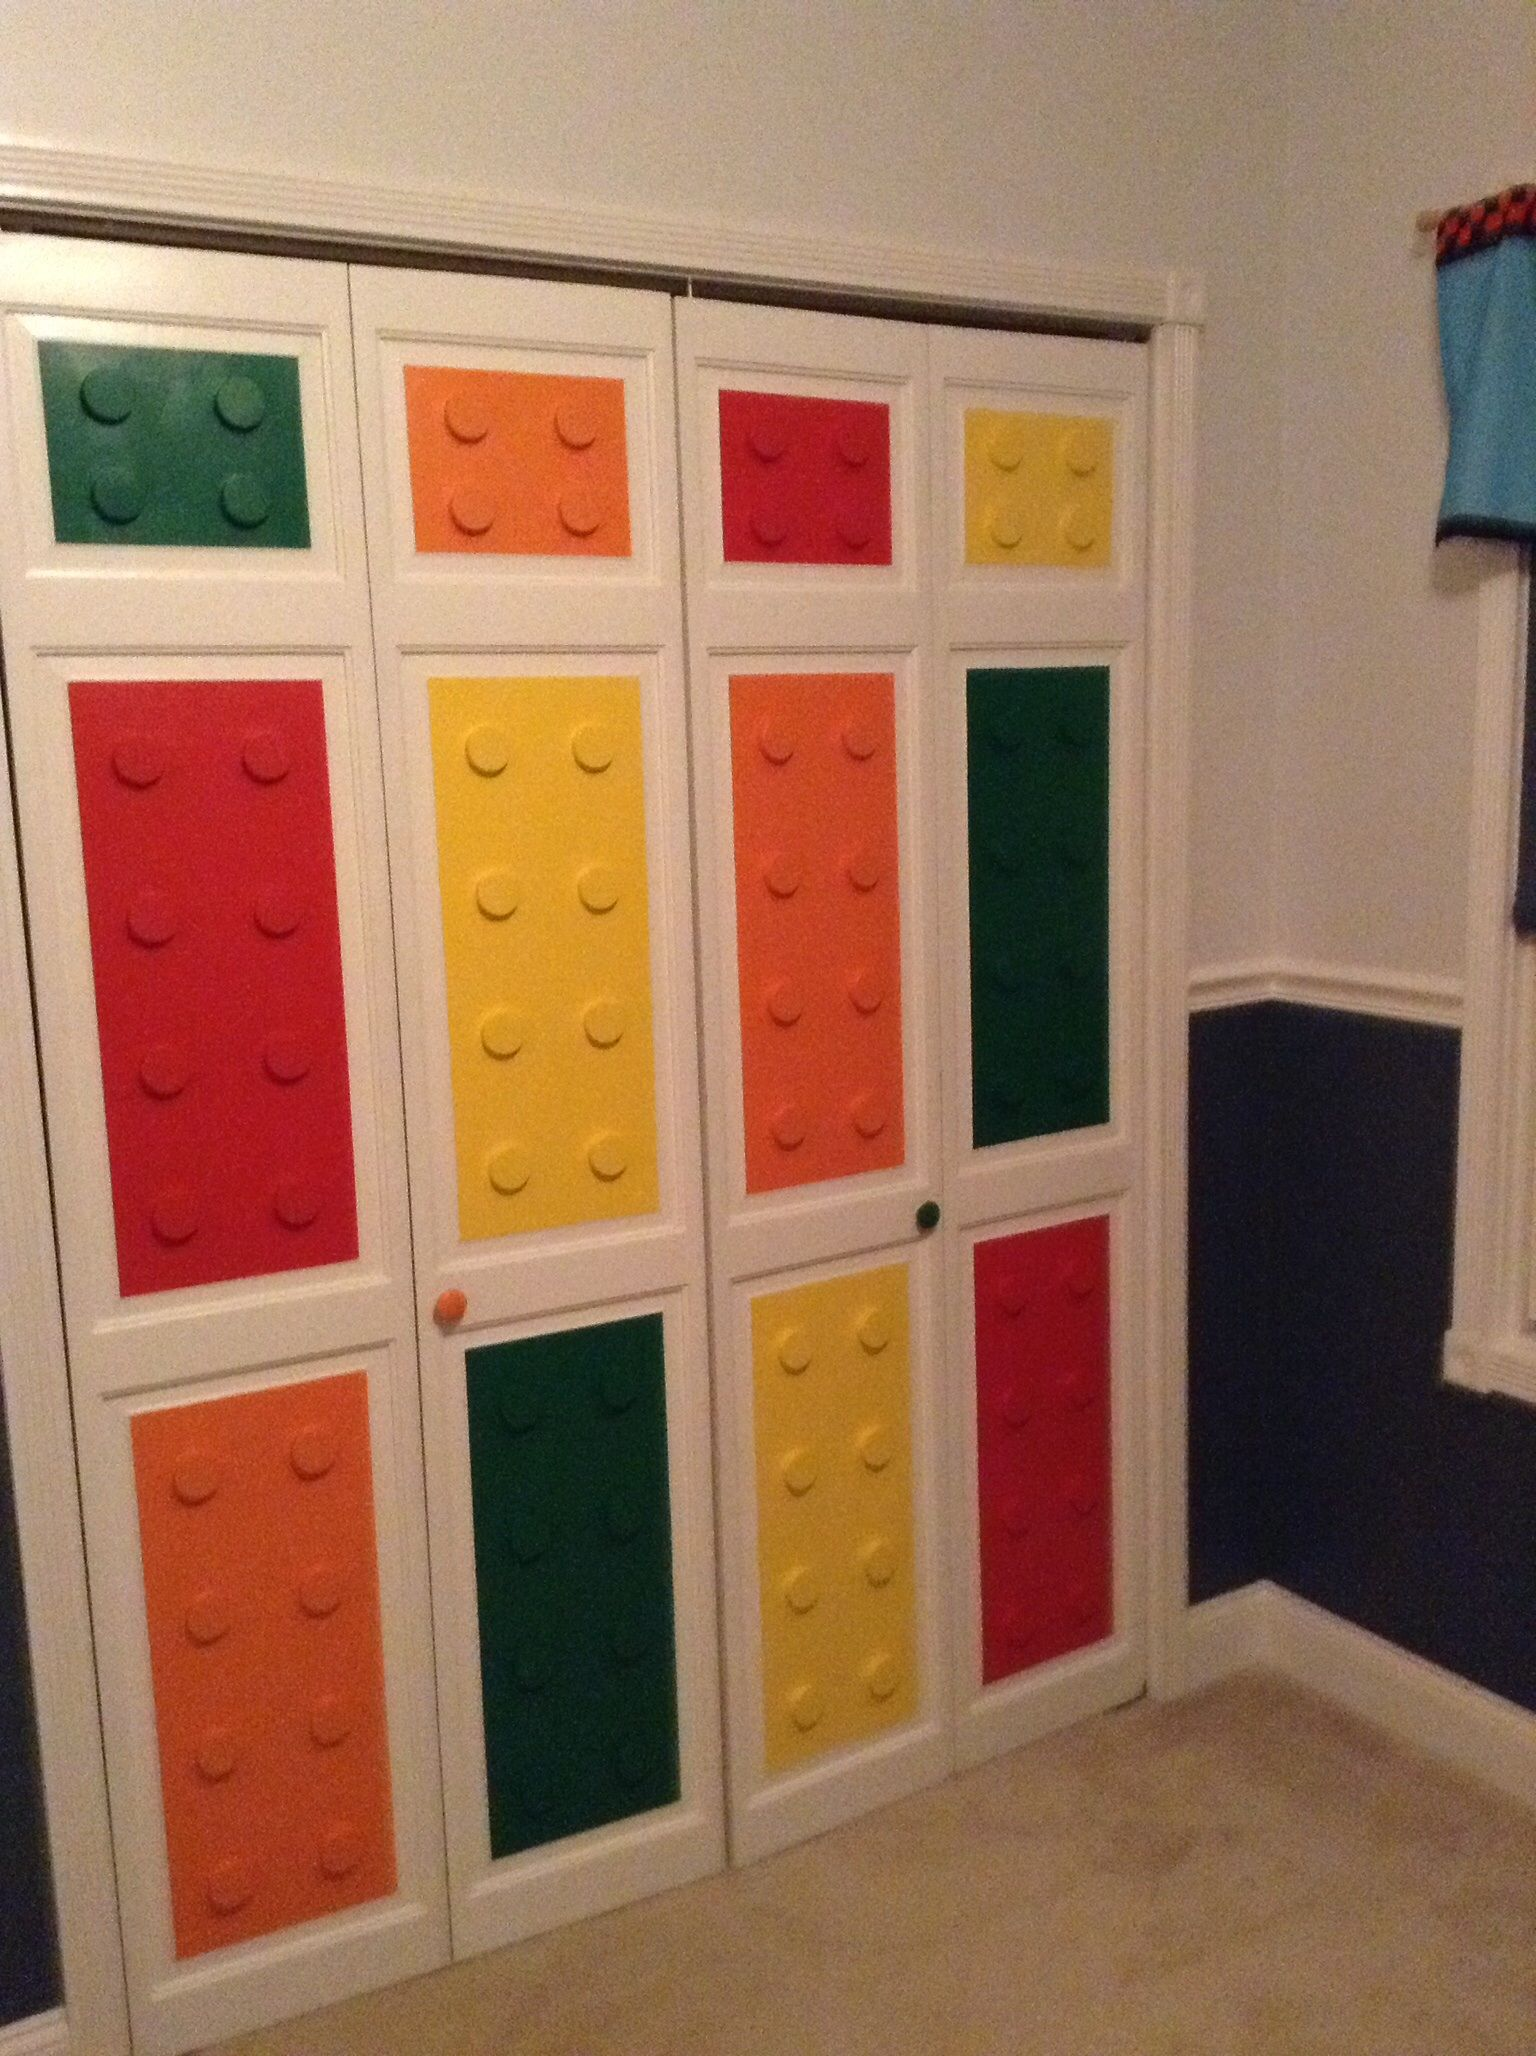 Room 2 Build Bedroom Kids Lego: Lego Closet Door